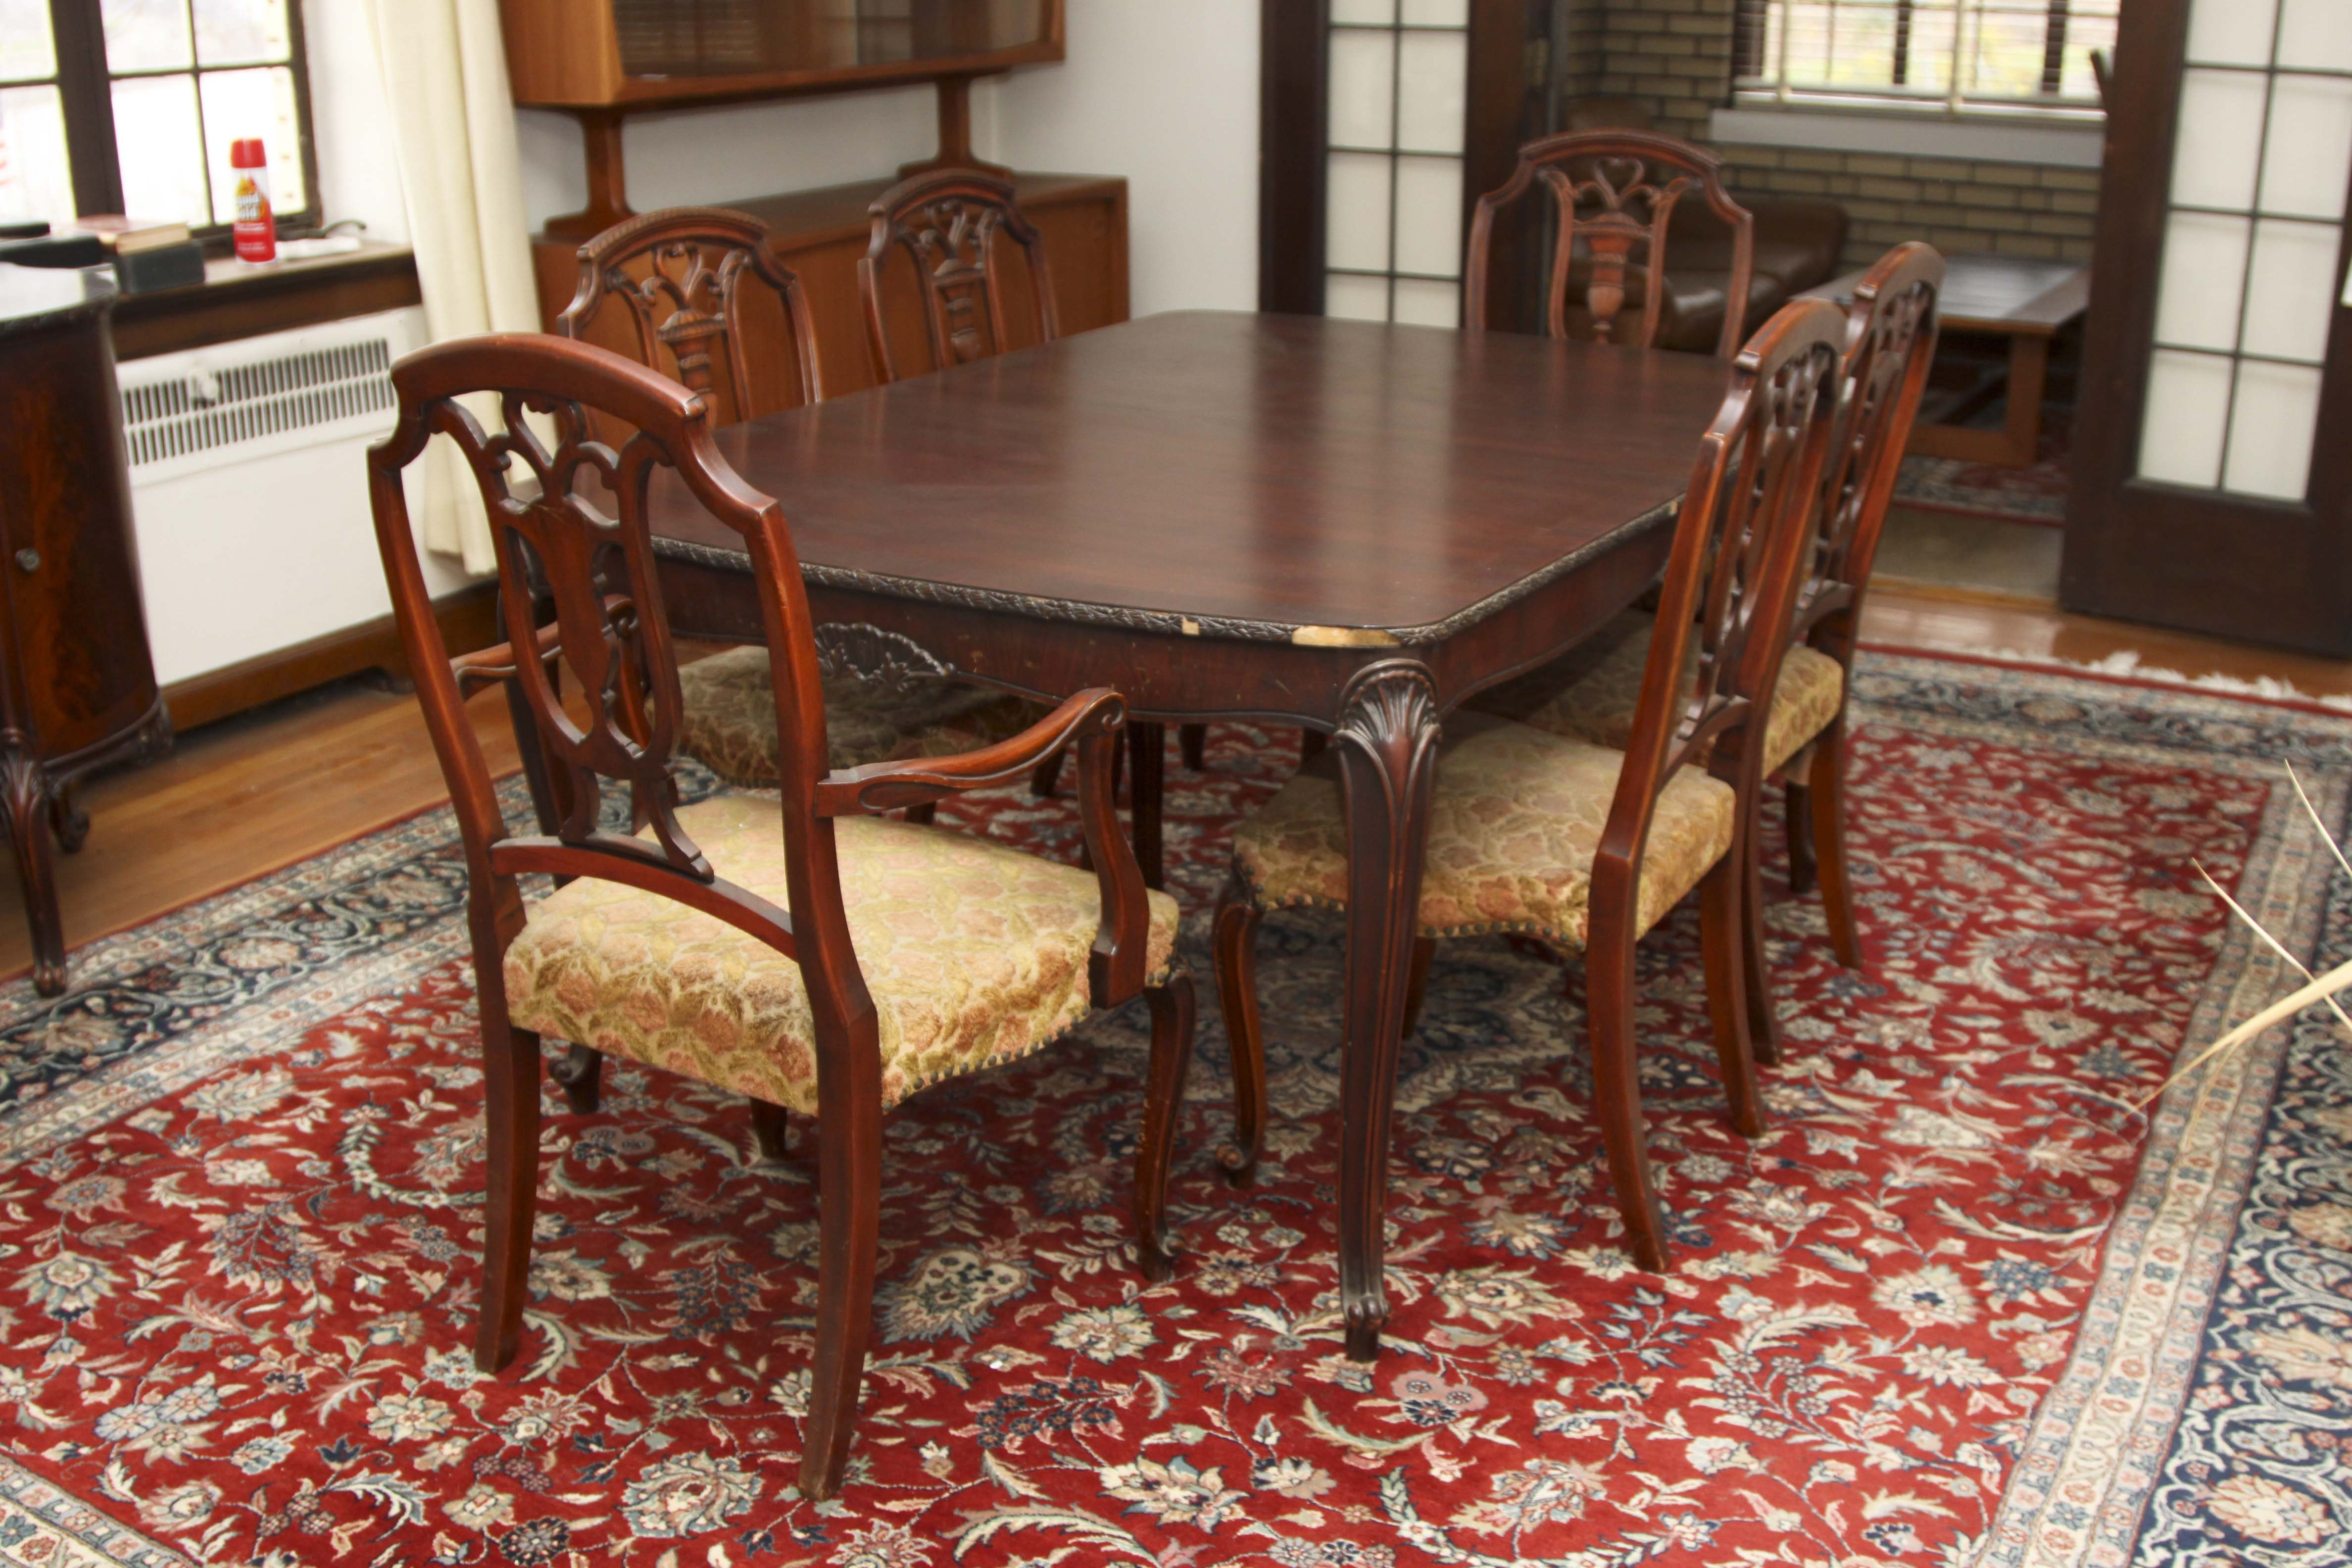 French Provincial Mahogany Dining Table and Chairs